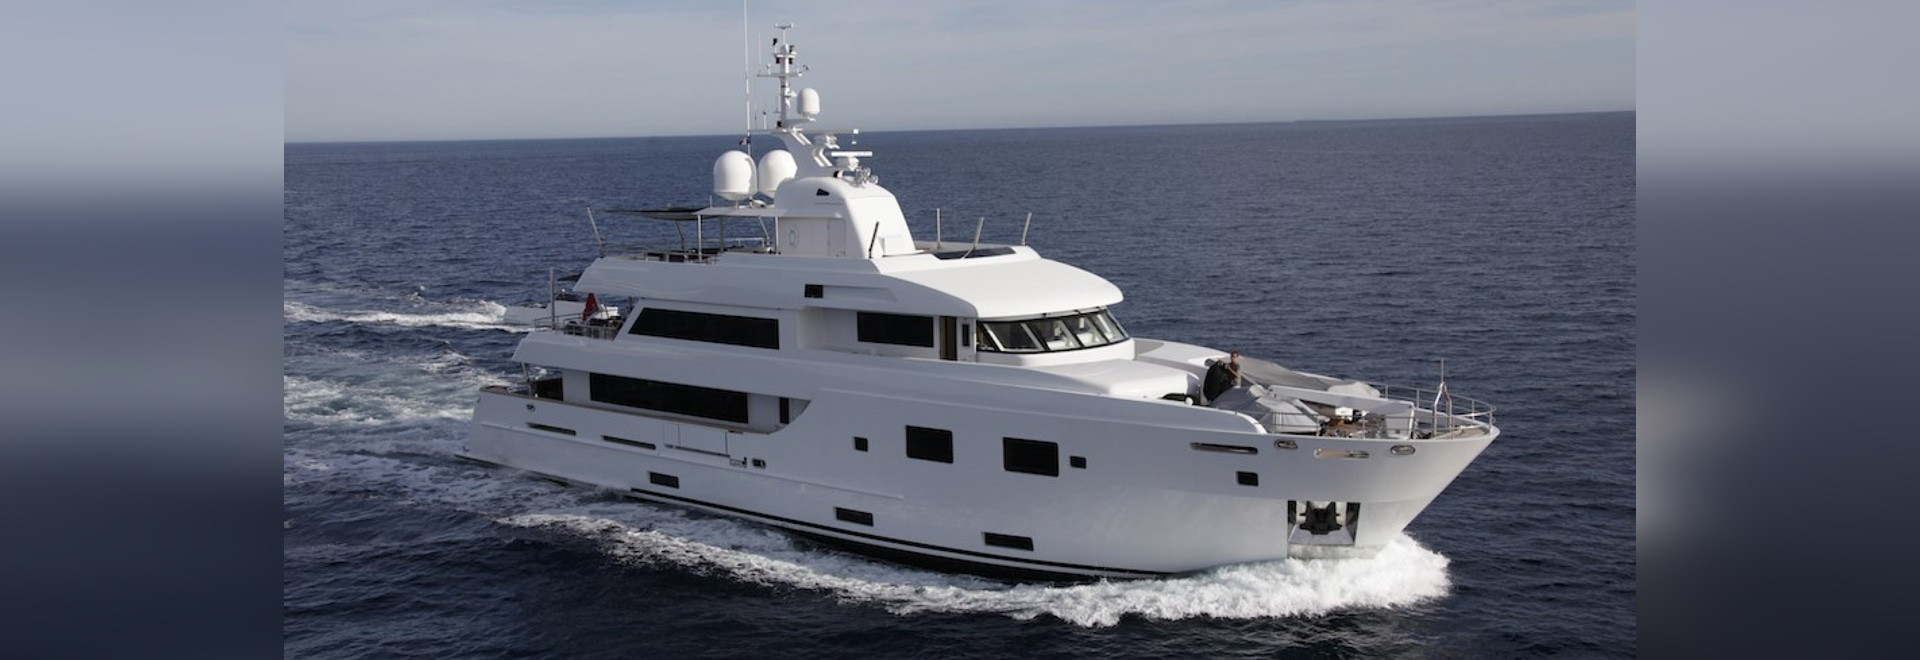 The 35m motor yacht JBH sold